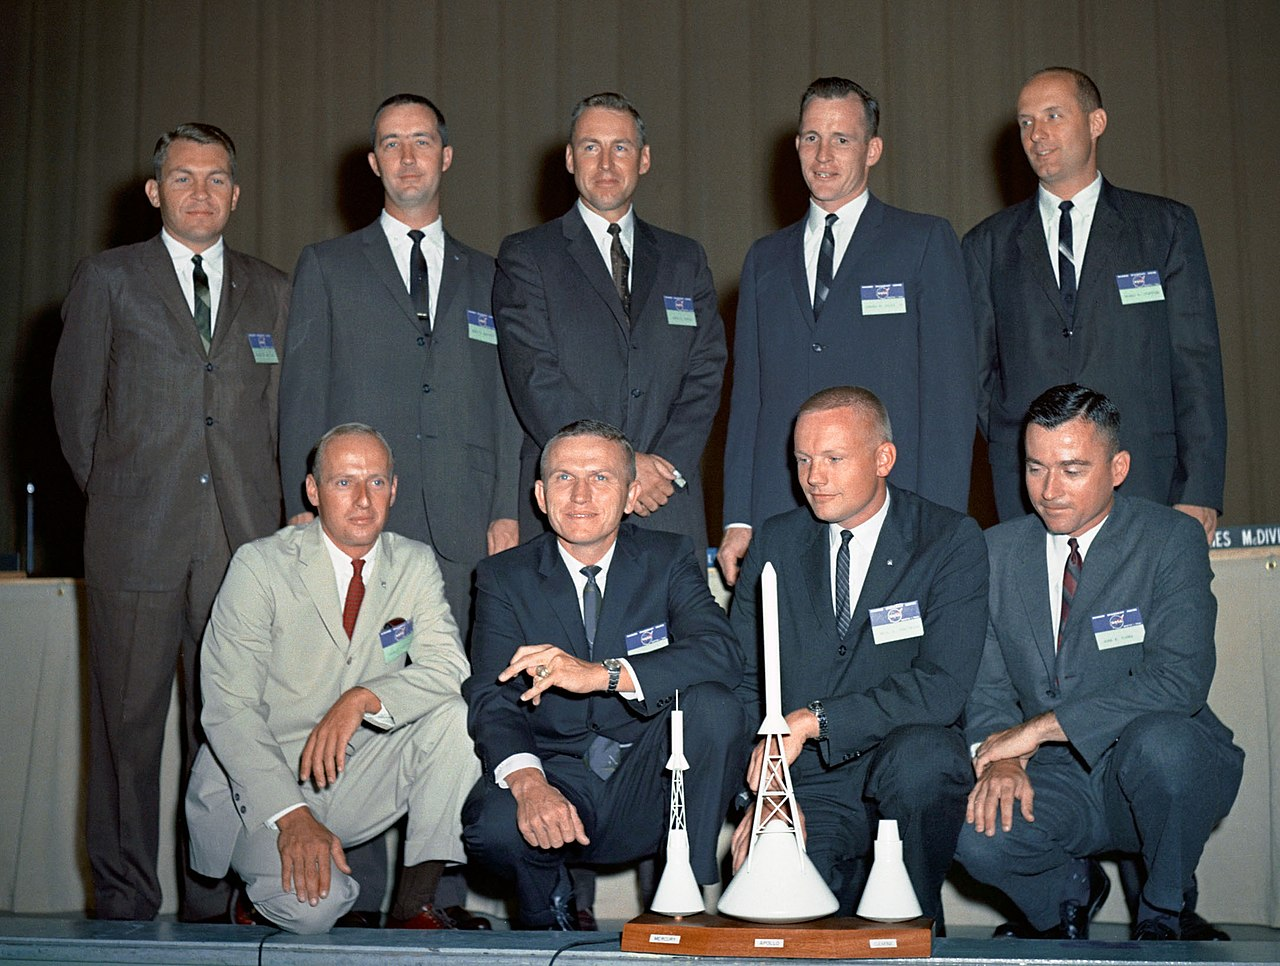 The New Nine En haut : See, McDivitt, Lovell, White, Stafford. En bas: Conrad, Borman, Armstrong, Young - crédits : NASA